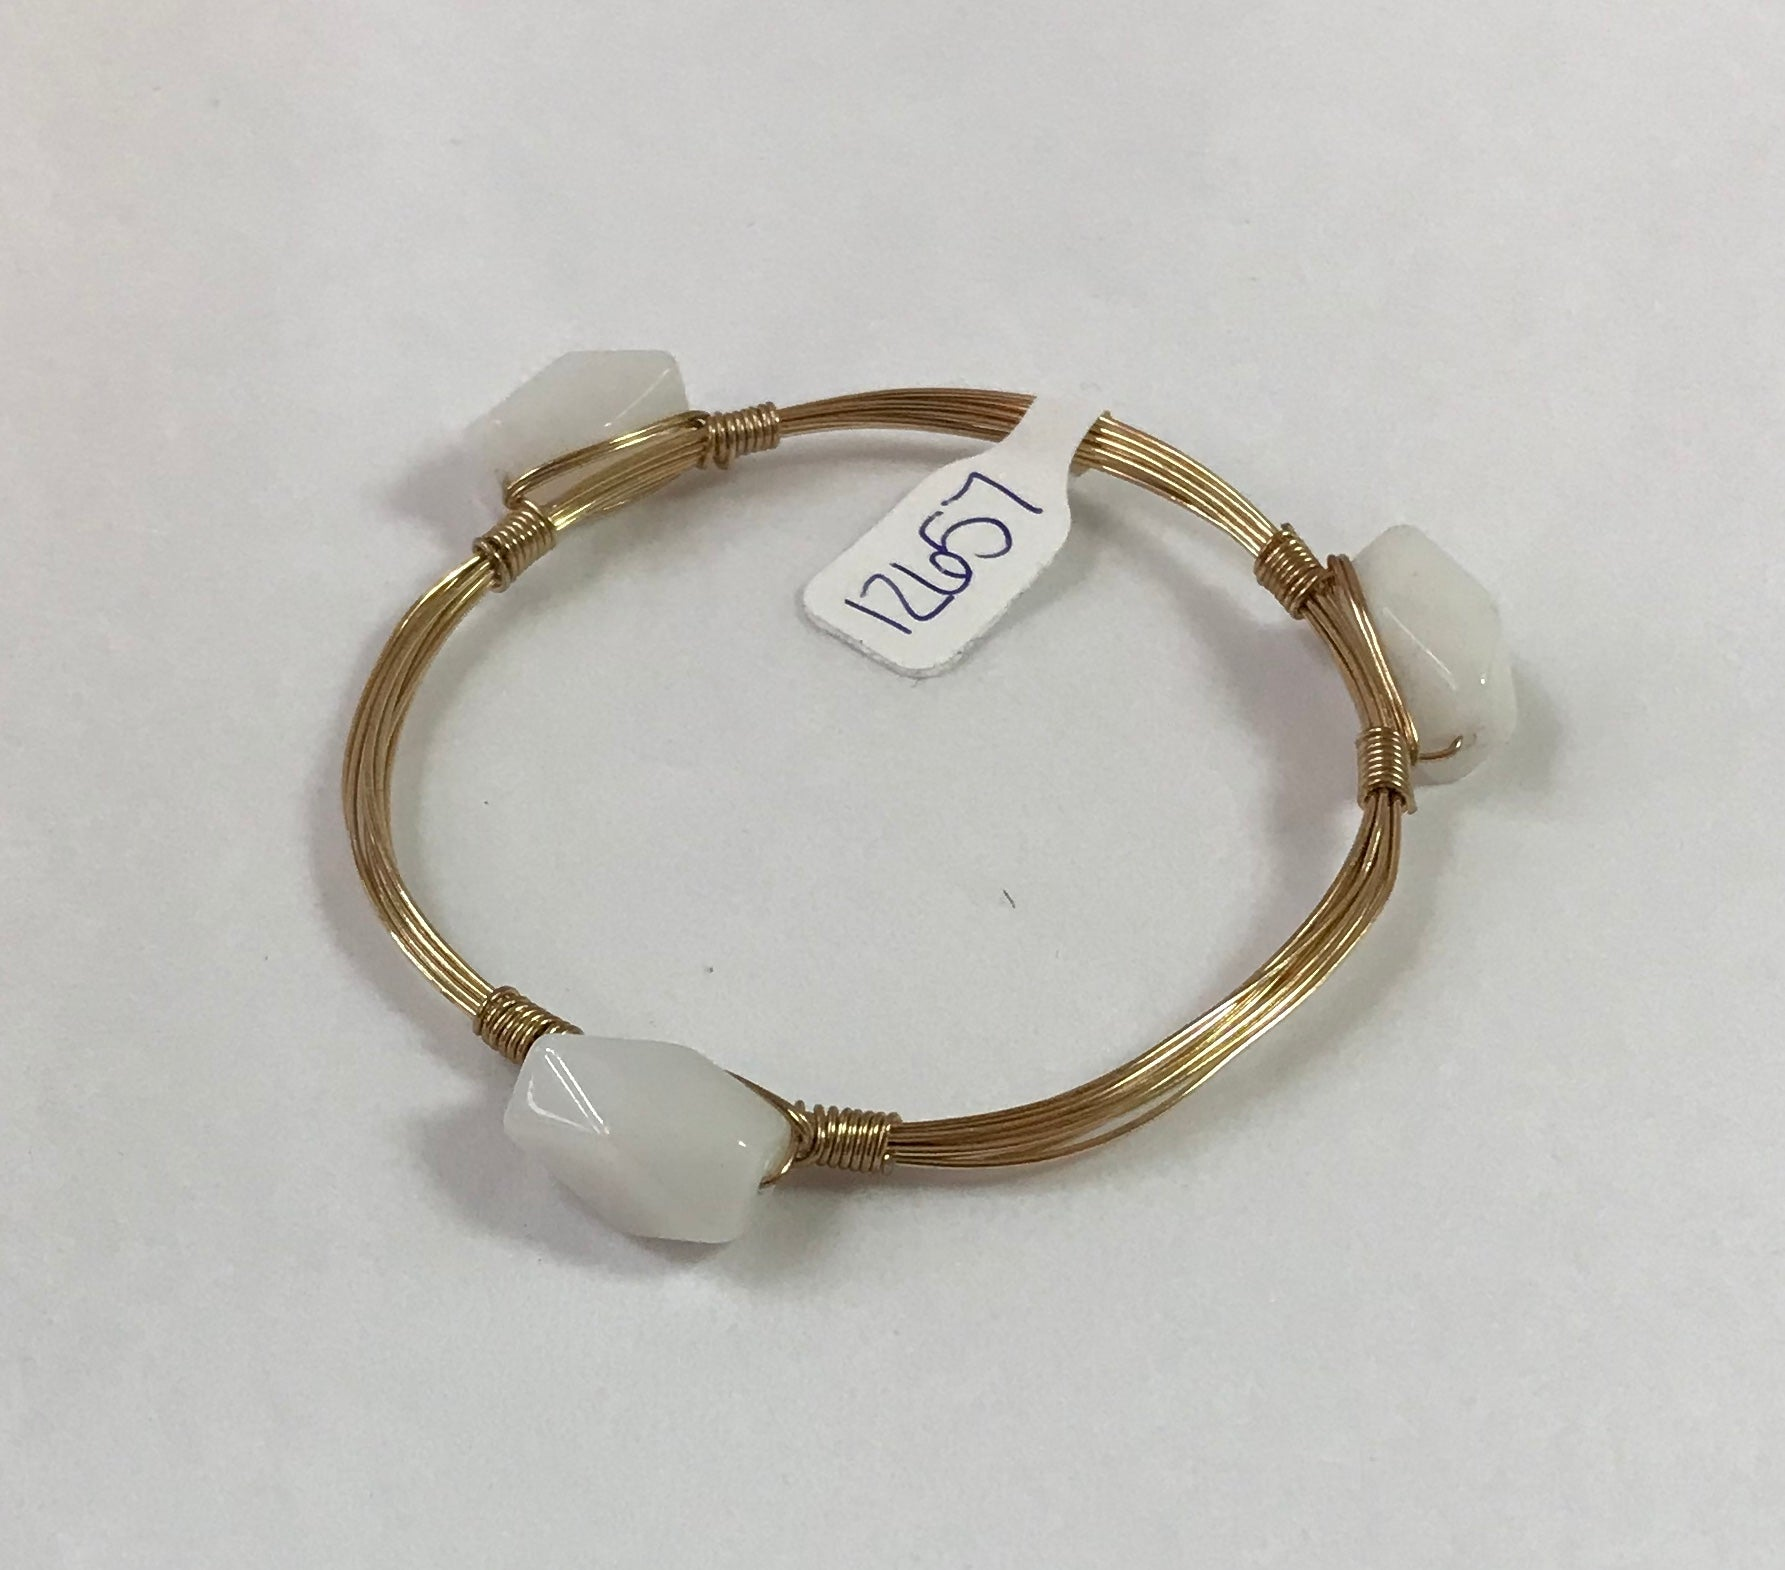 Gold with White Stones Bracelet